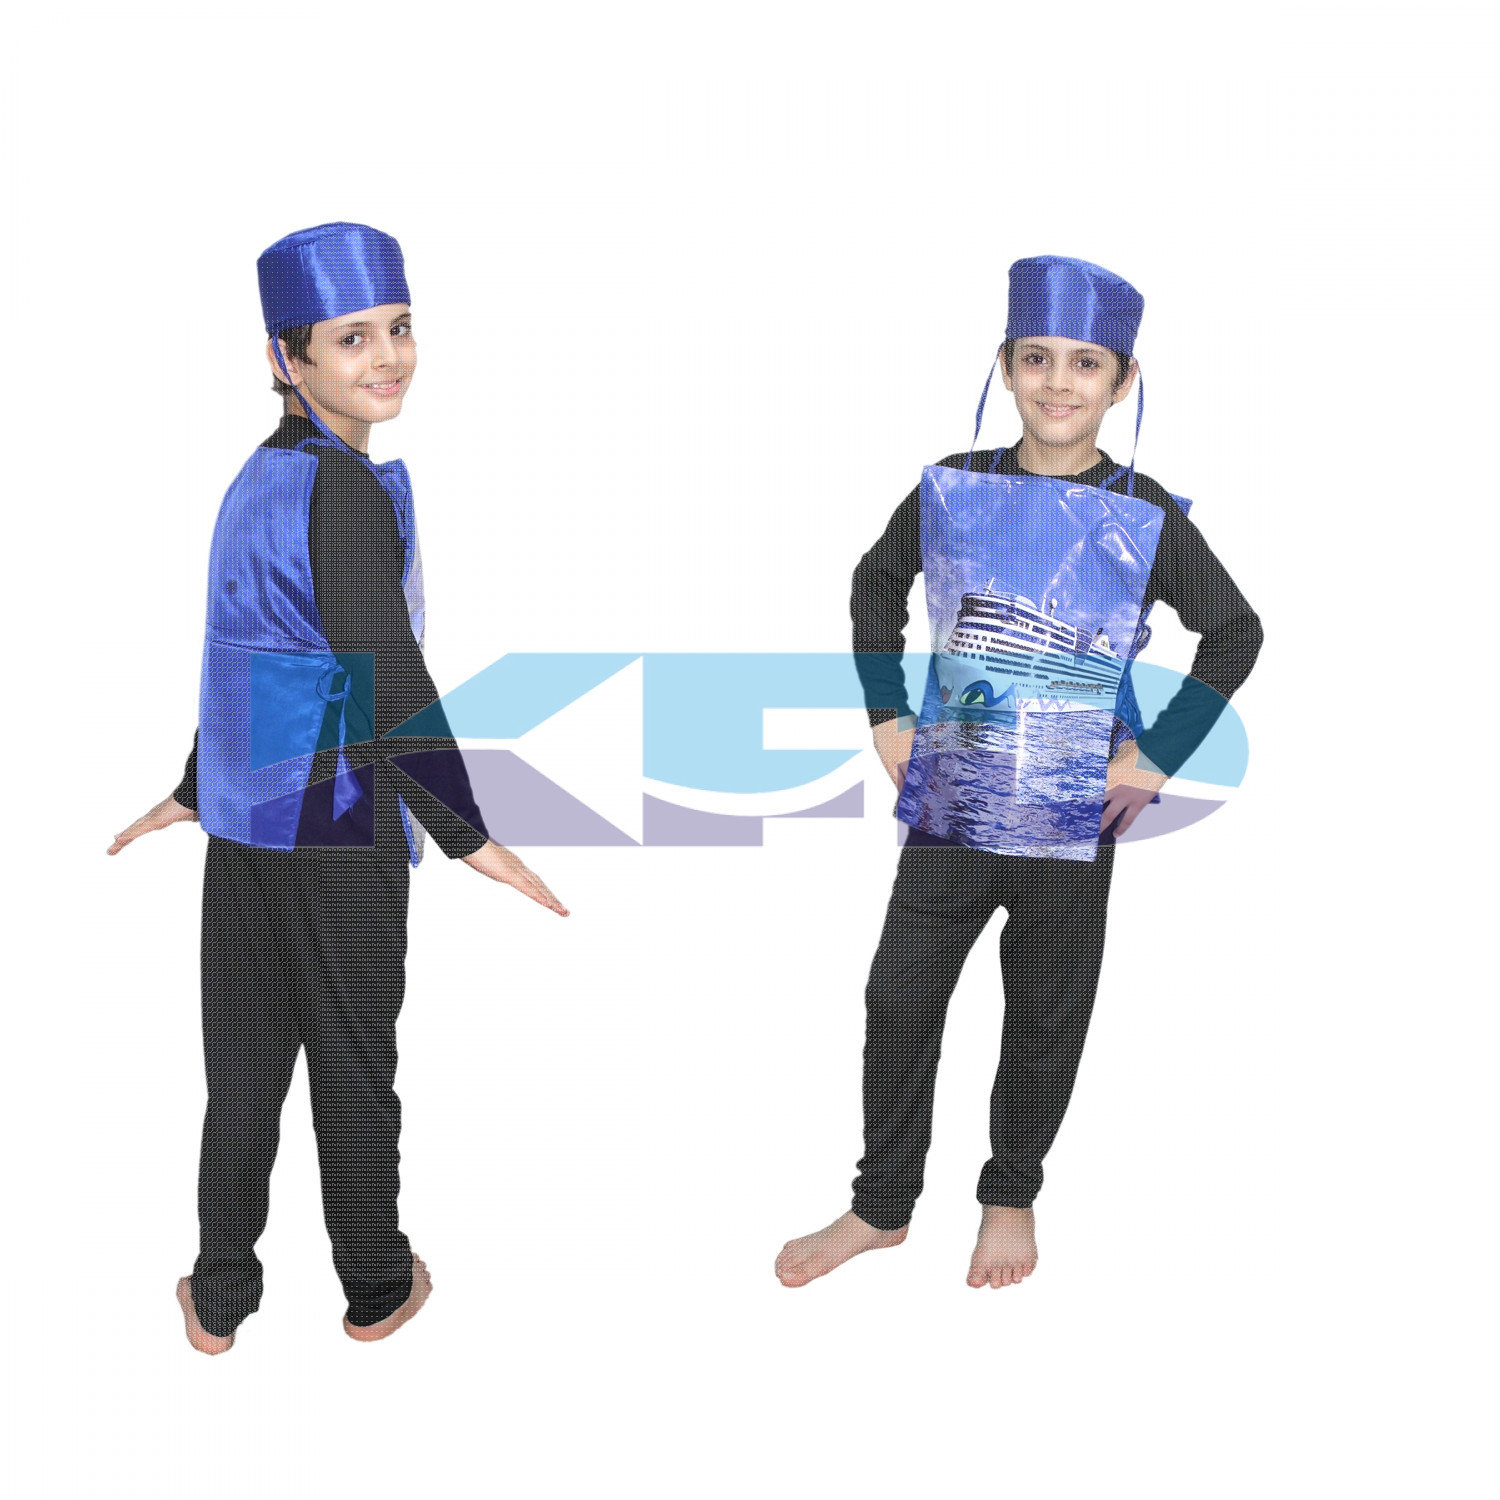 Ship fancy dress for kids,Object Costume for School  Annual function/Theme Party/Competition/Stage Shows Dress